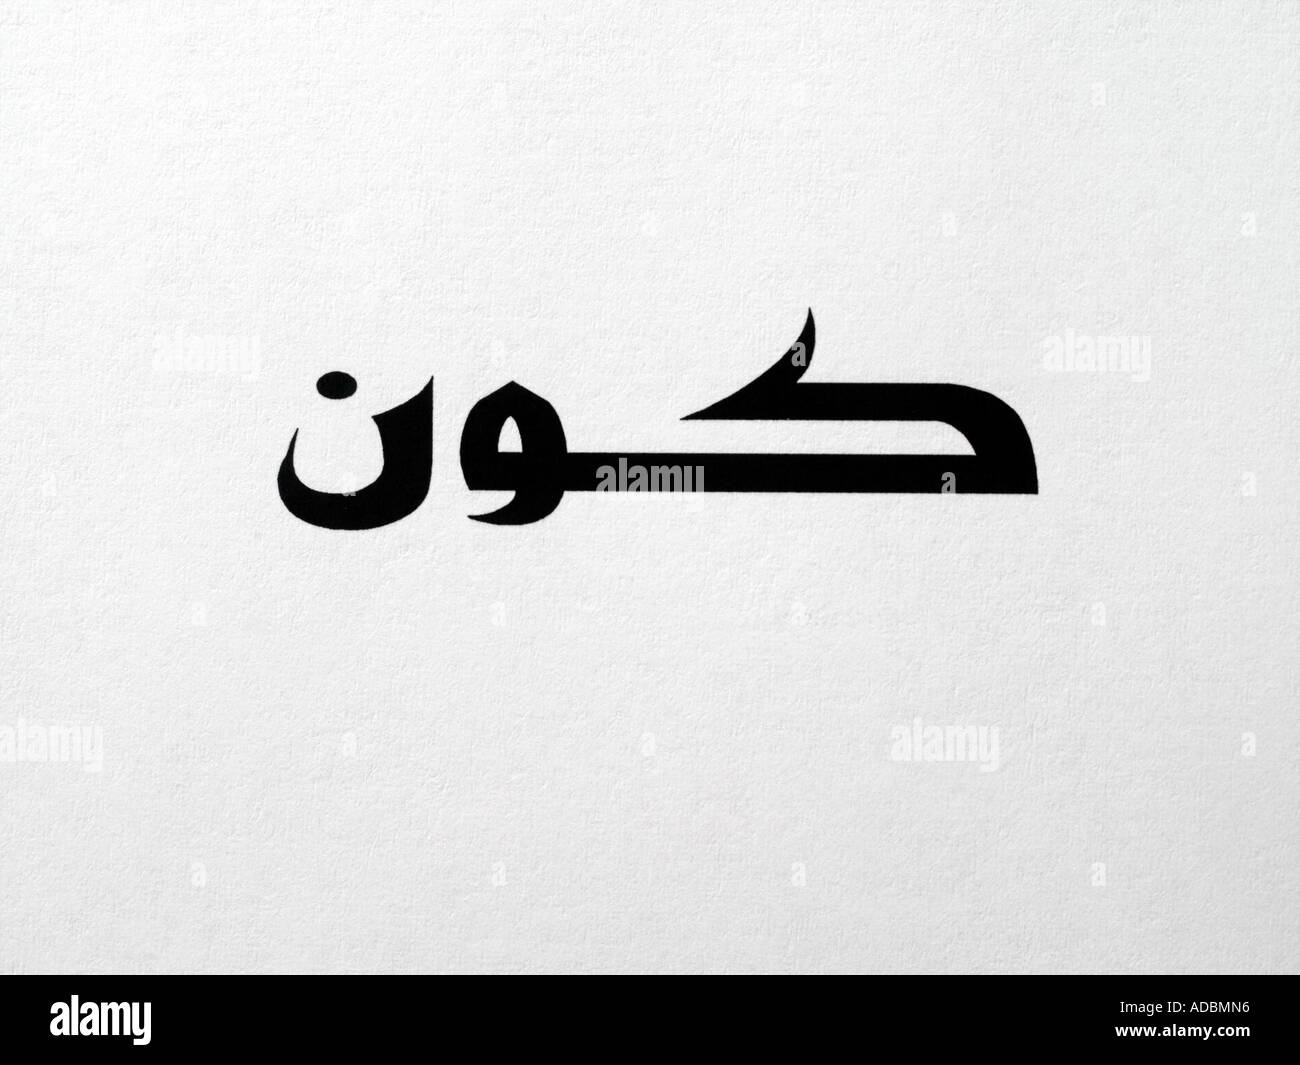 Arabic script symbol kun meaning to exist stock photo 7639637 alamy arabic script symbol kun meaning to exist buycottarizona Image collections